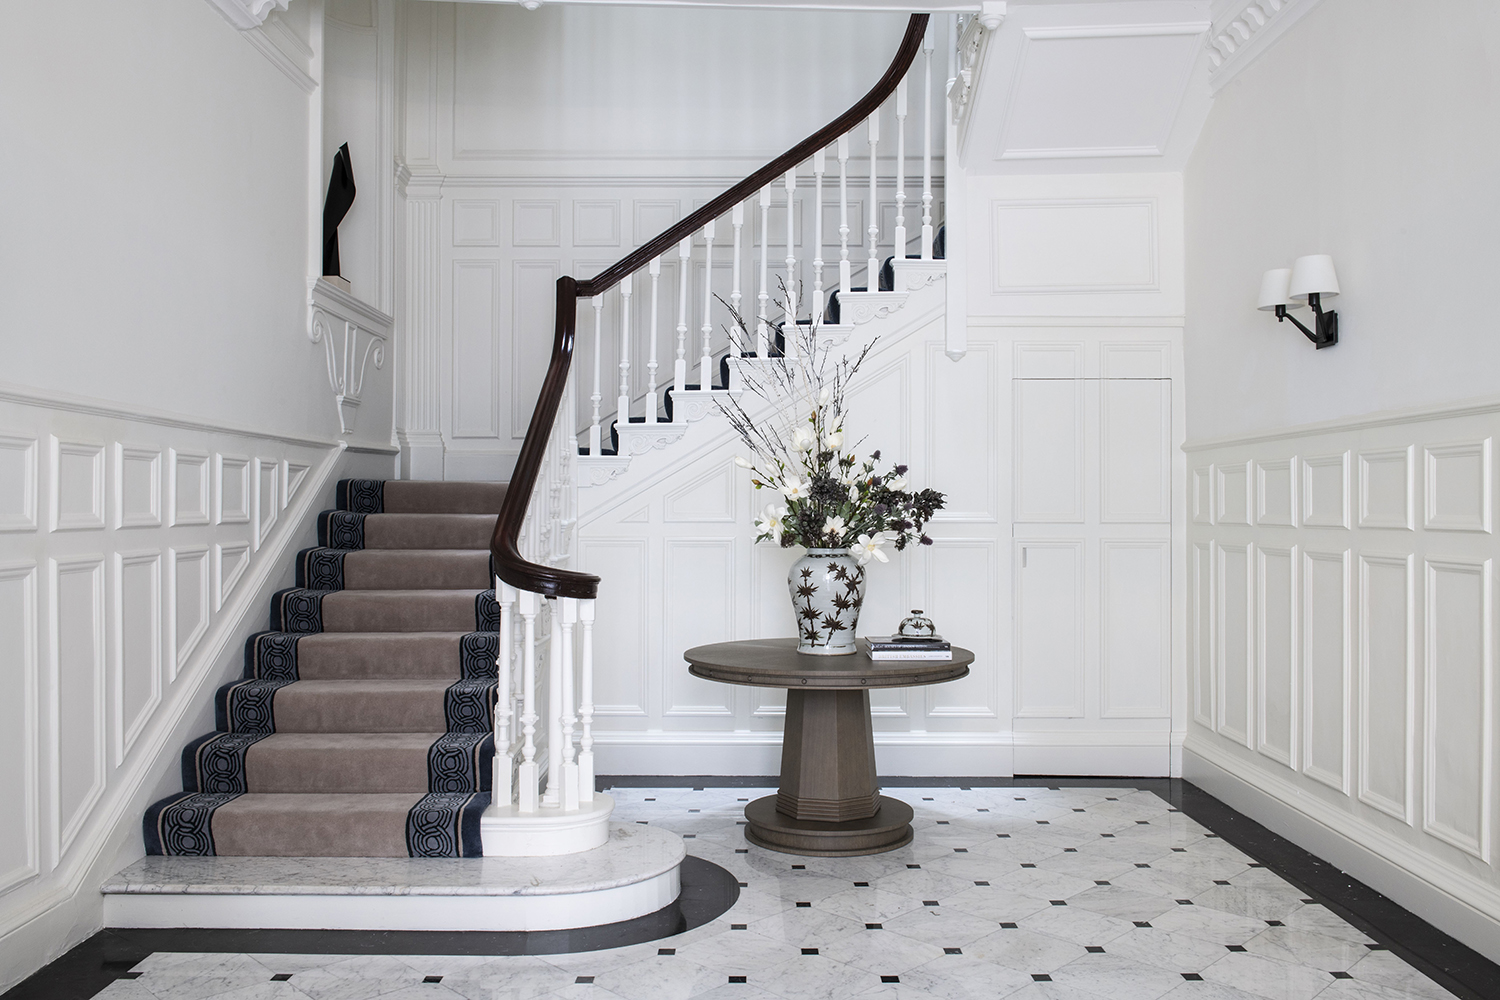 CUSTOM STAIR RUNNER_Interior Design by Schiller Beynon_Photography by Jody Stewart